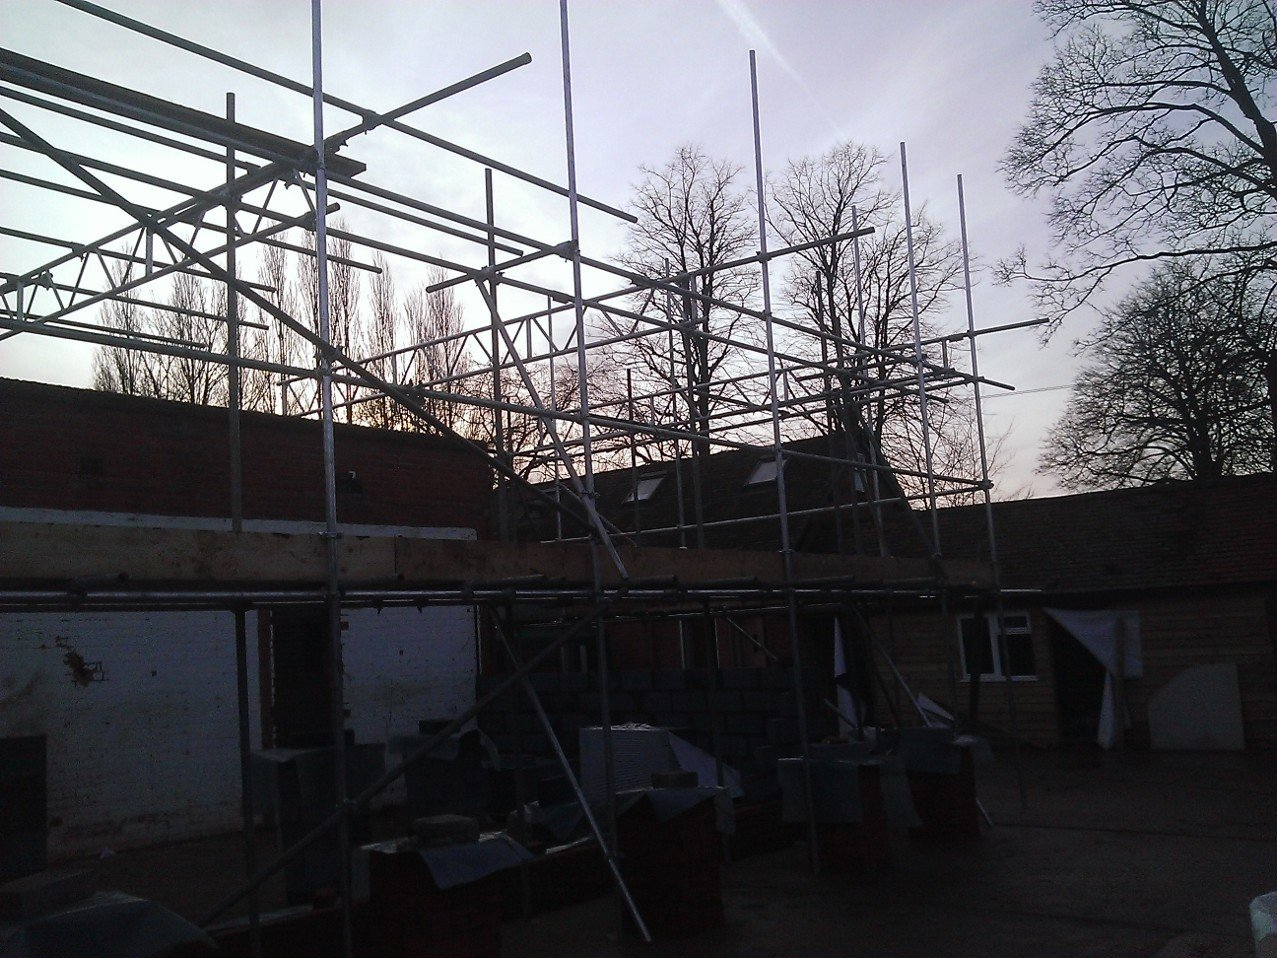 Scaffolding projects